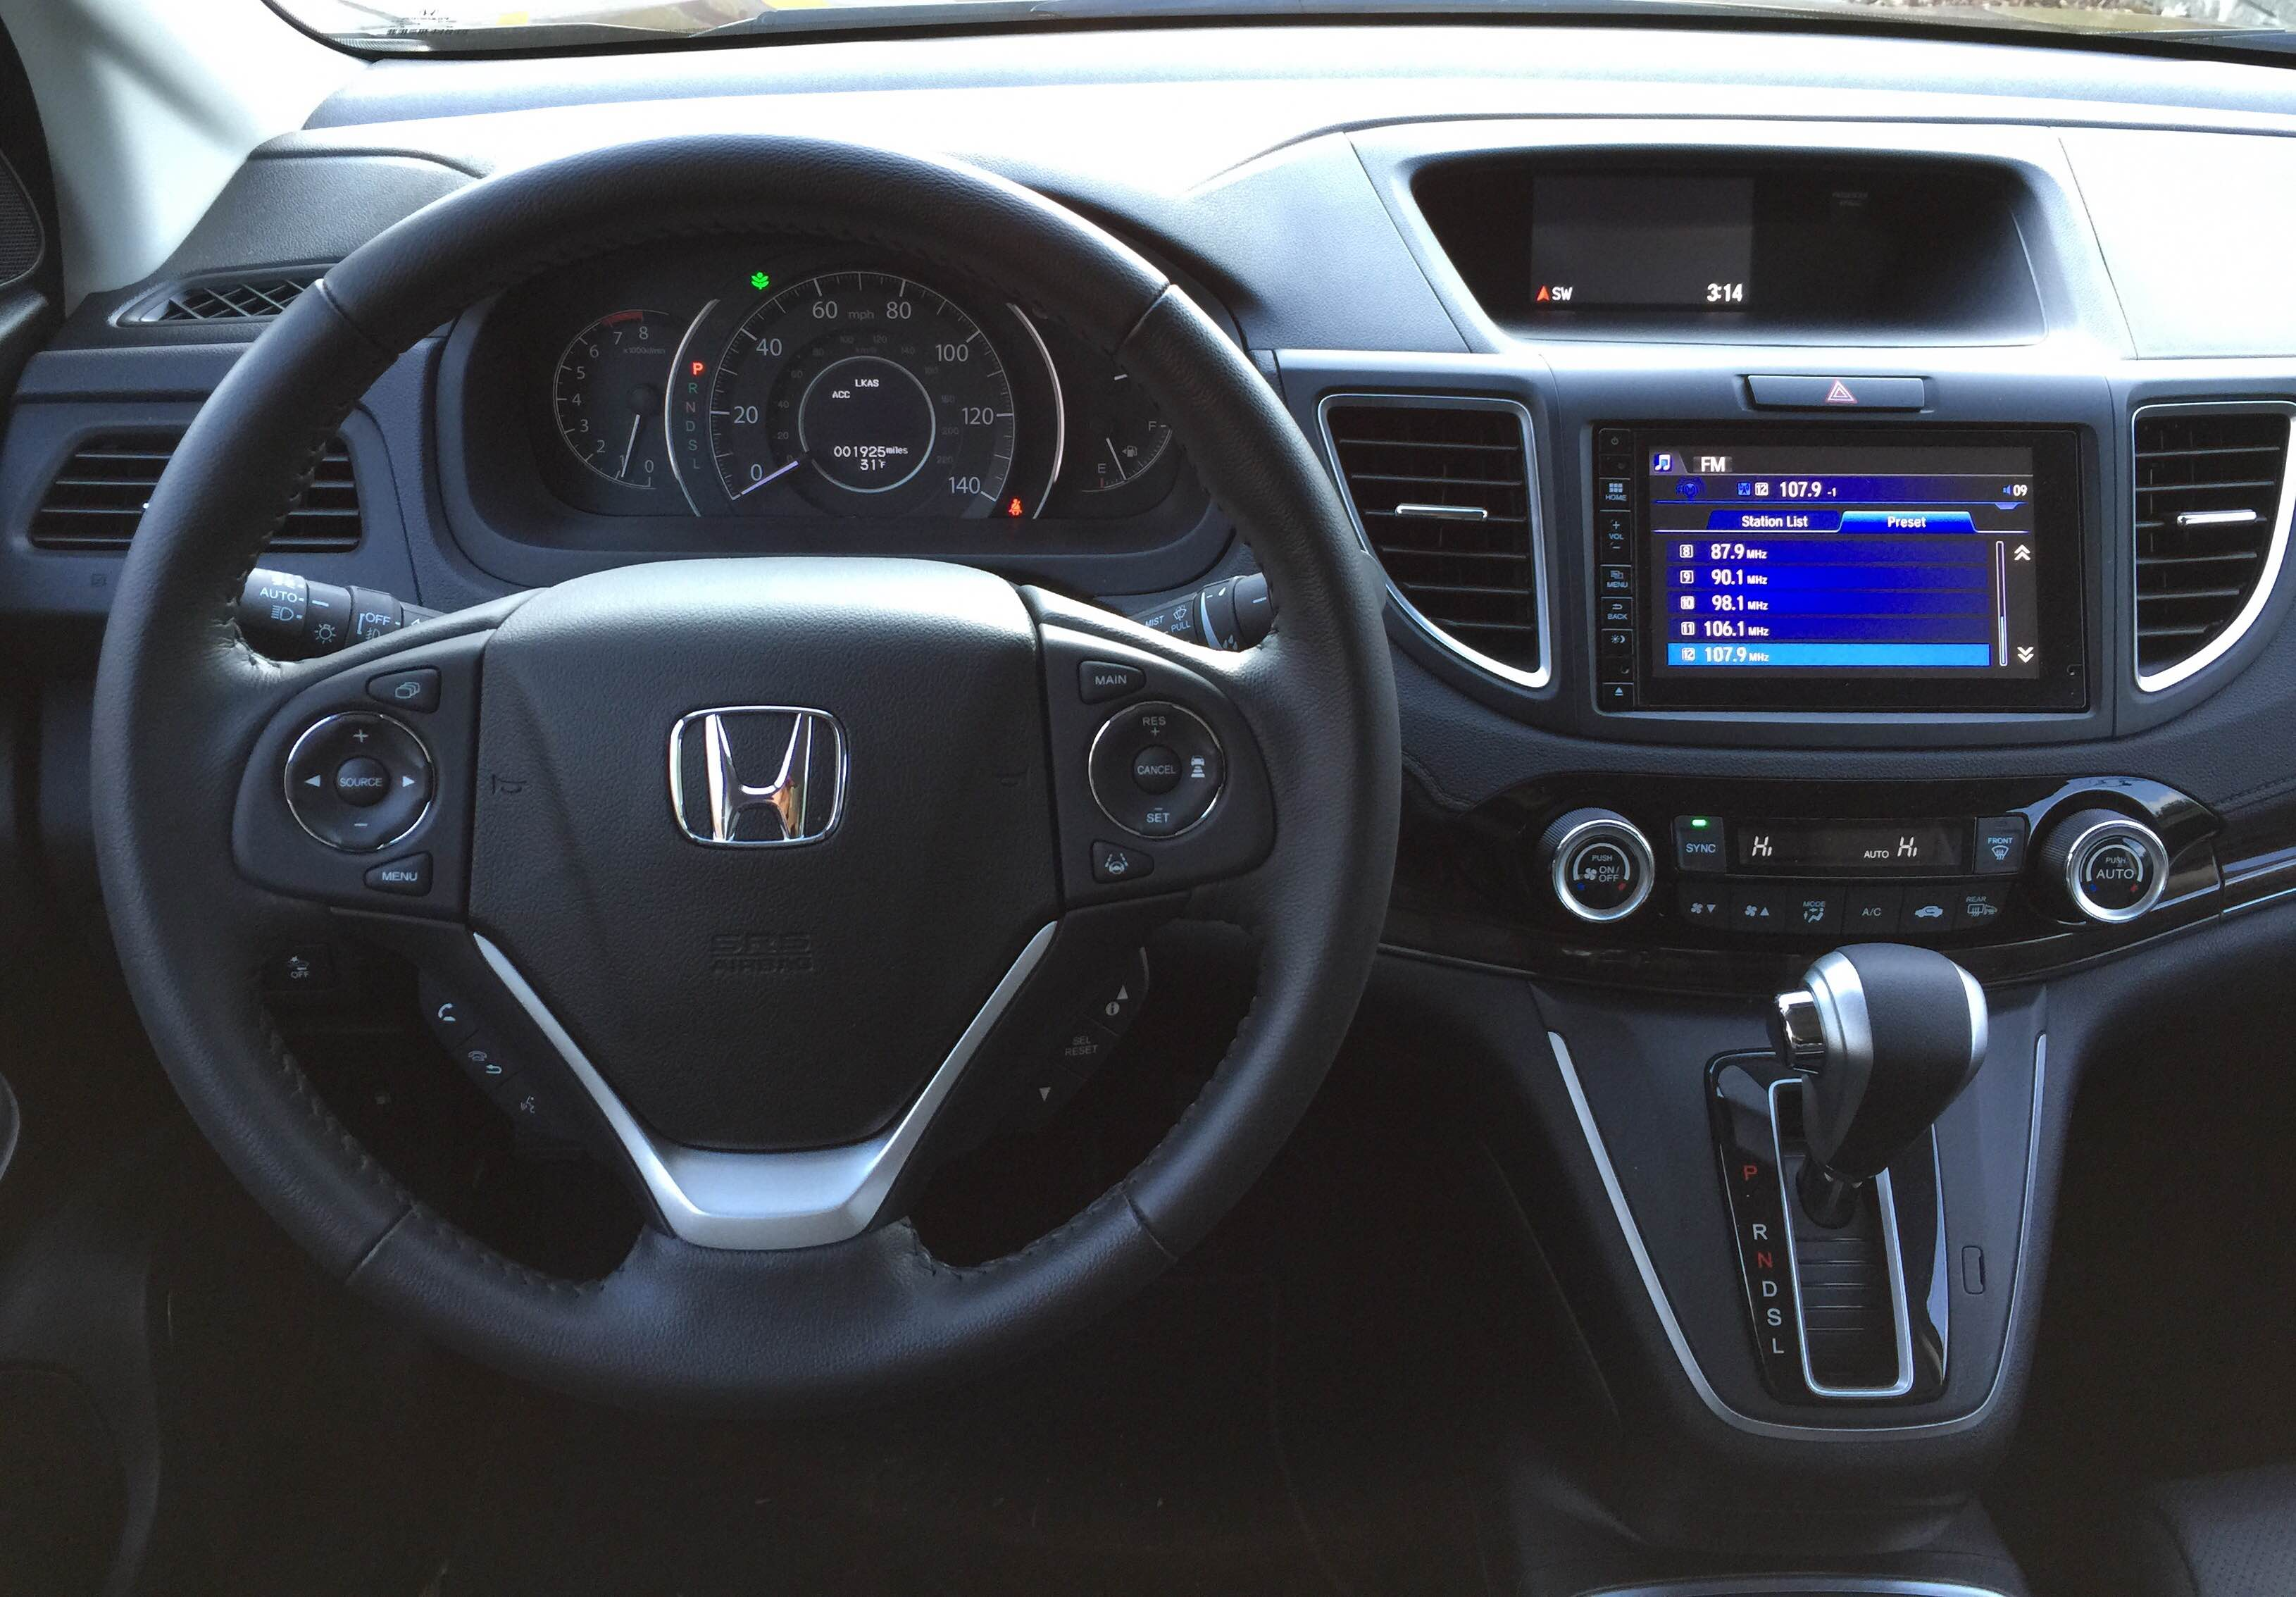 2015 Honda CR-V Dash